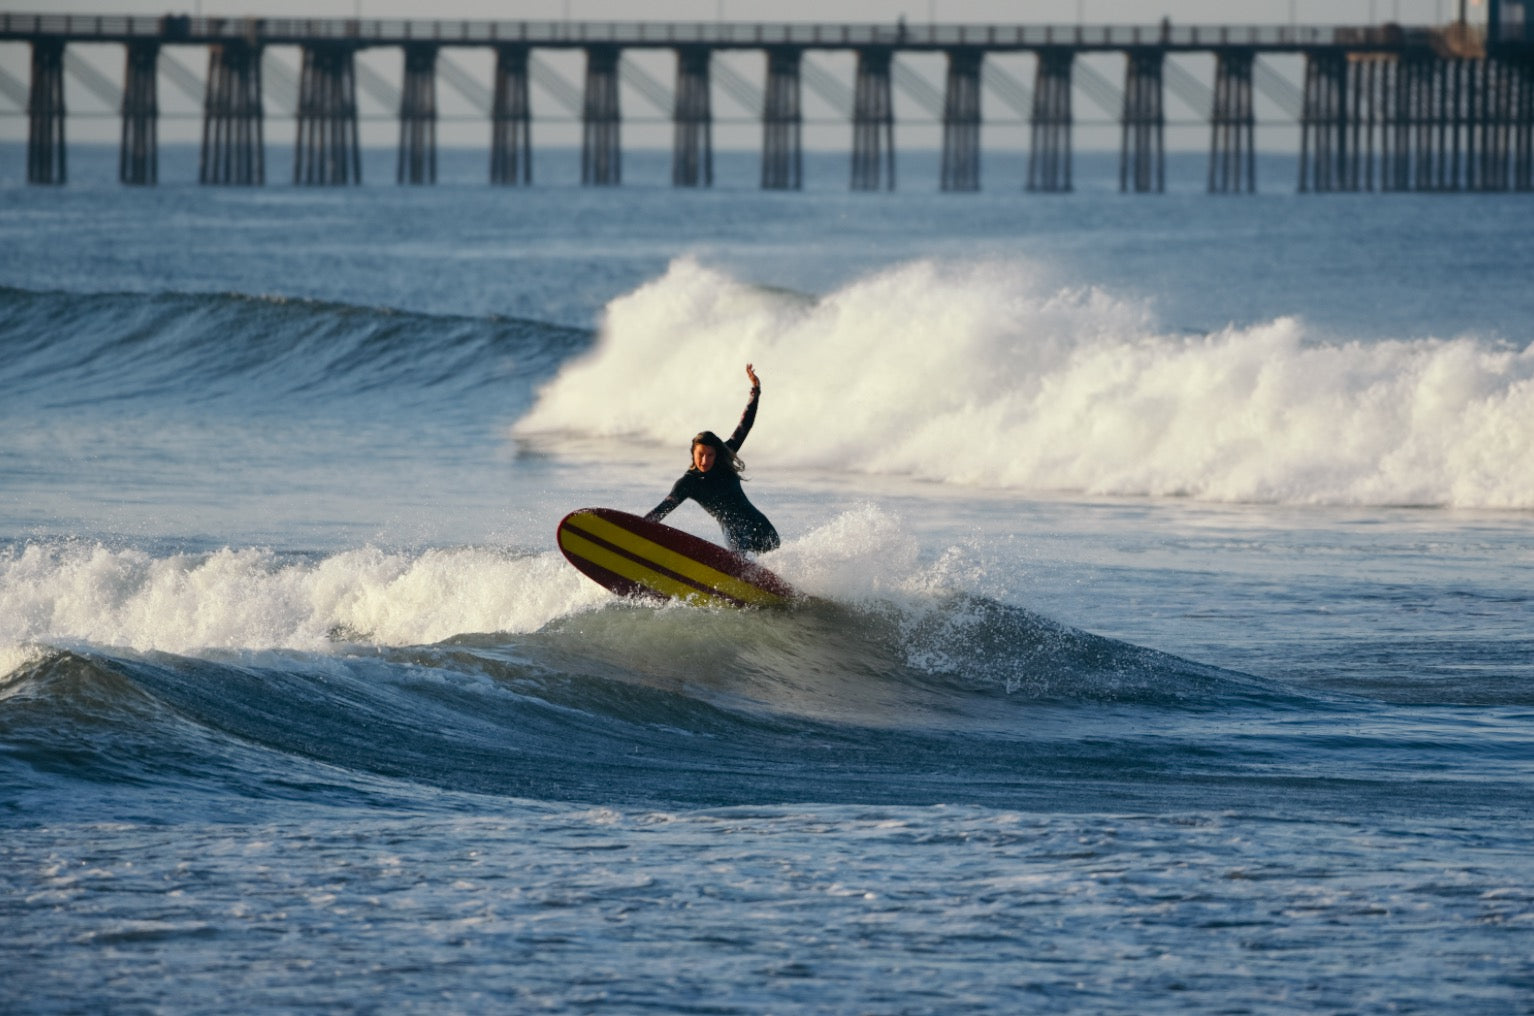 deanna surfing oceanside harbor her waves